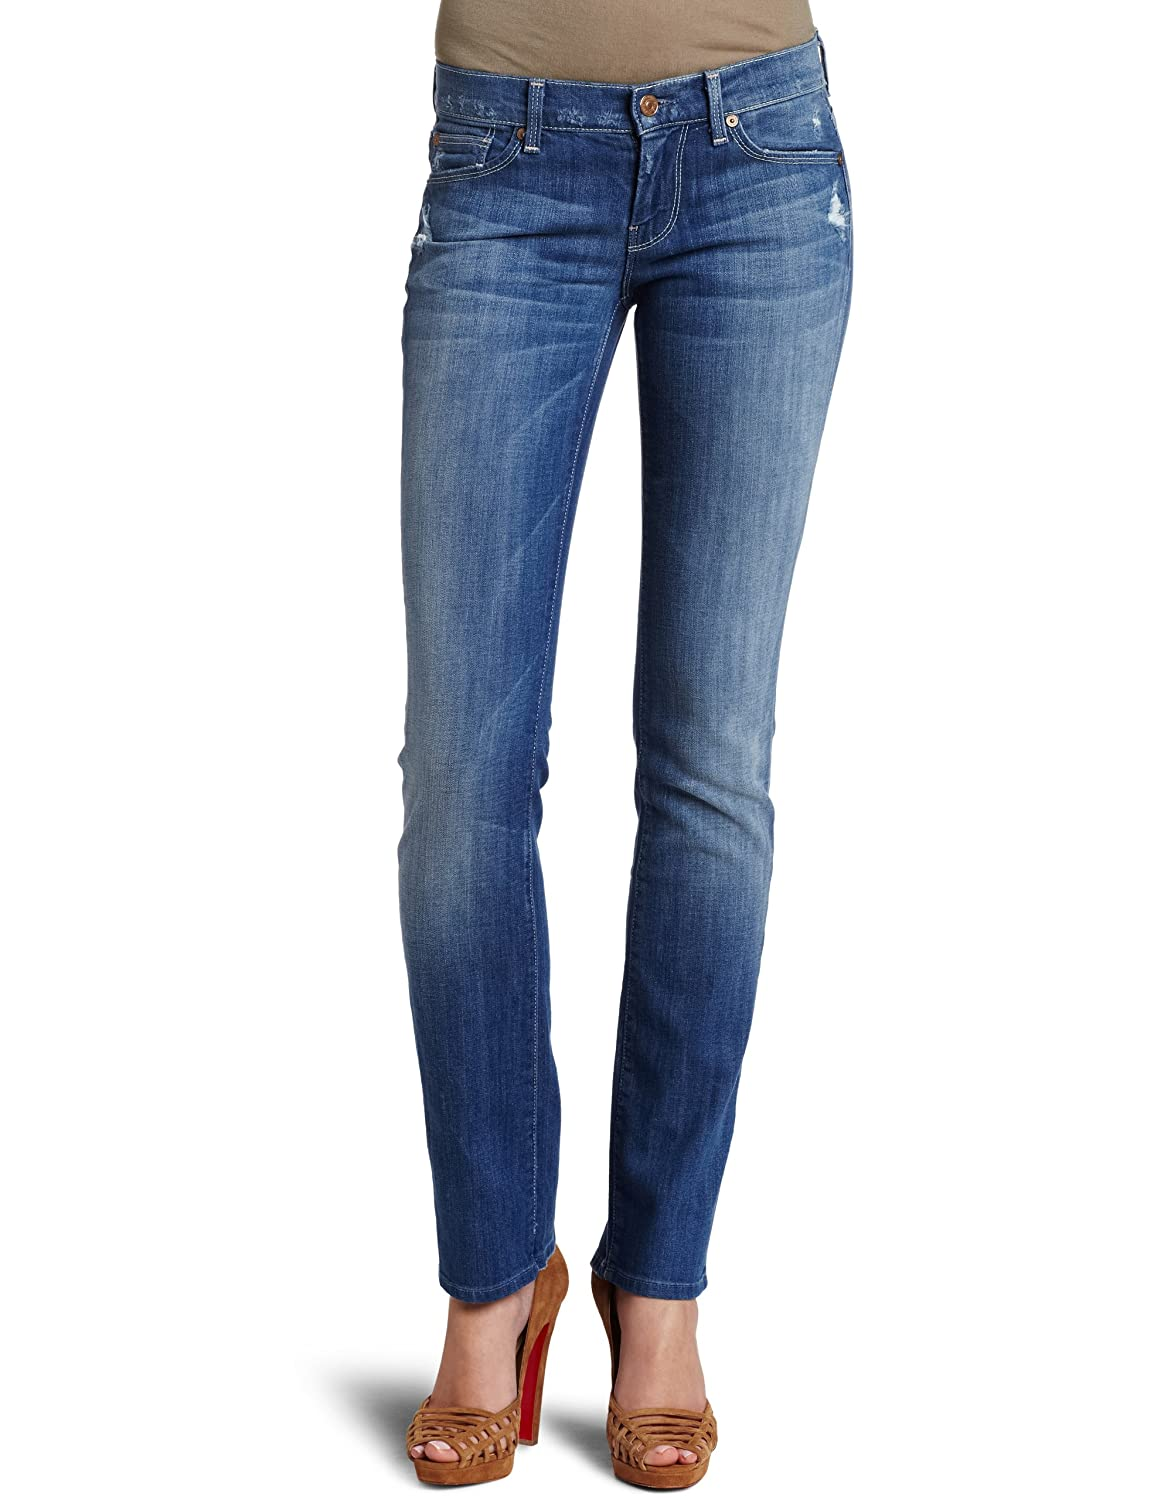 Baywater bluee 7 For All Mankind Women's Straight Leg Jean